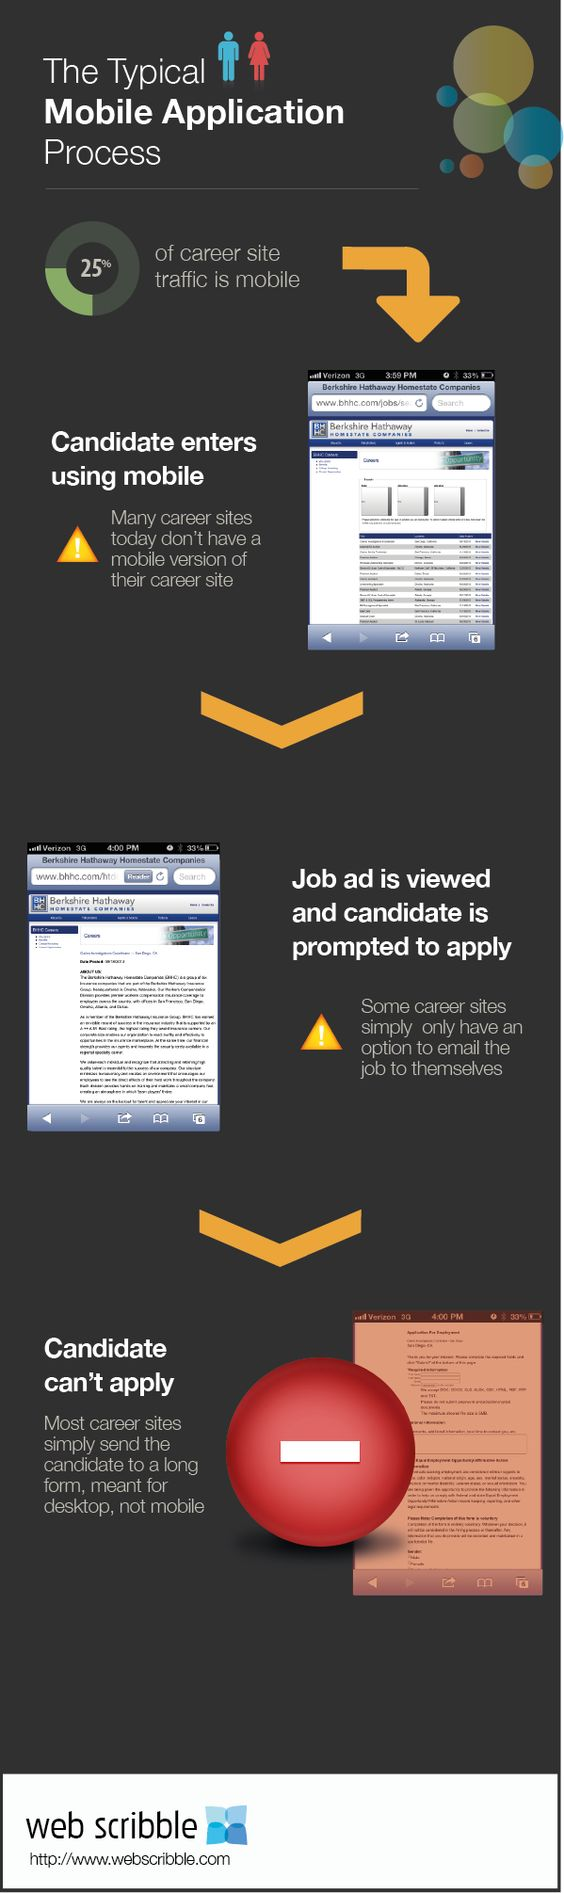 mobile apply process only 1 in 4 career sites support mobile mobile apply process only 1 in 4 career sites support mobile device applications